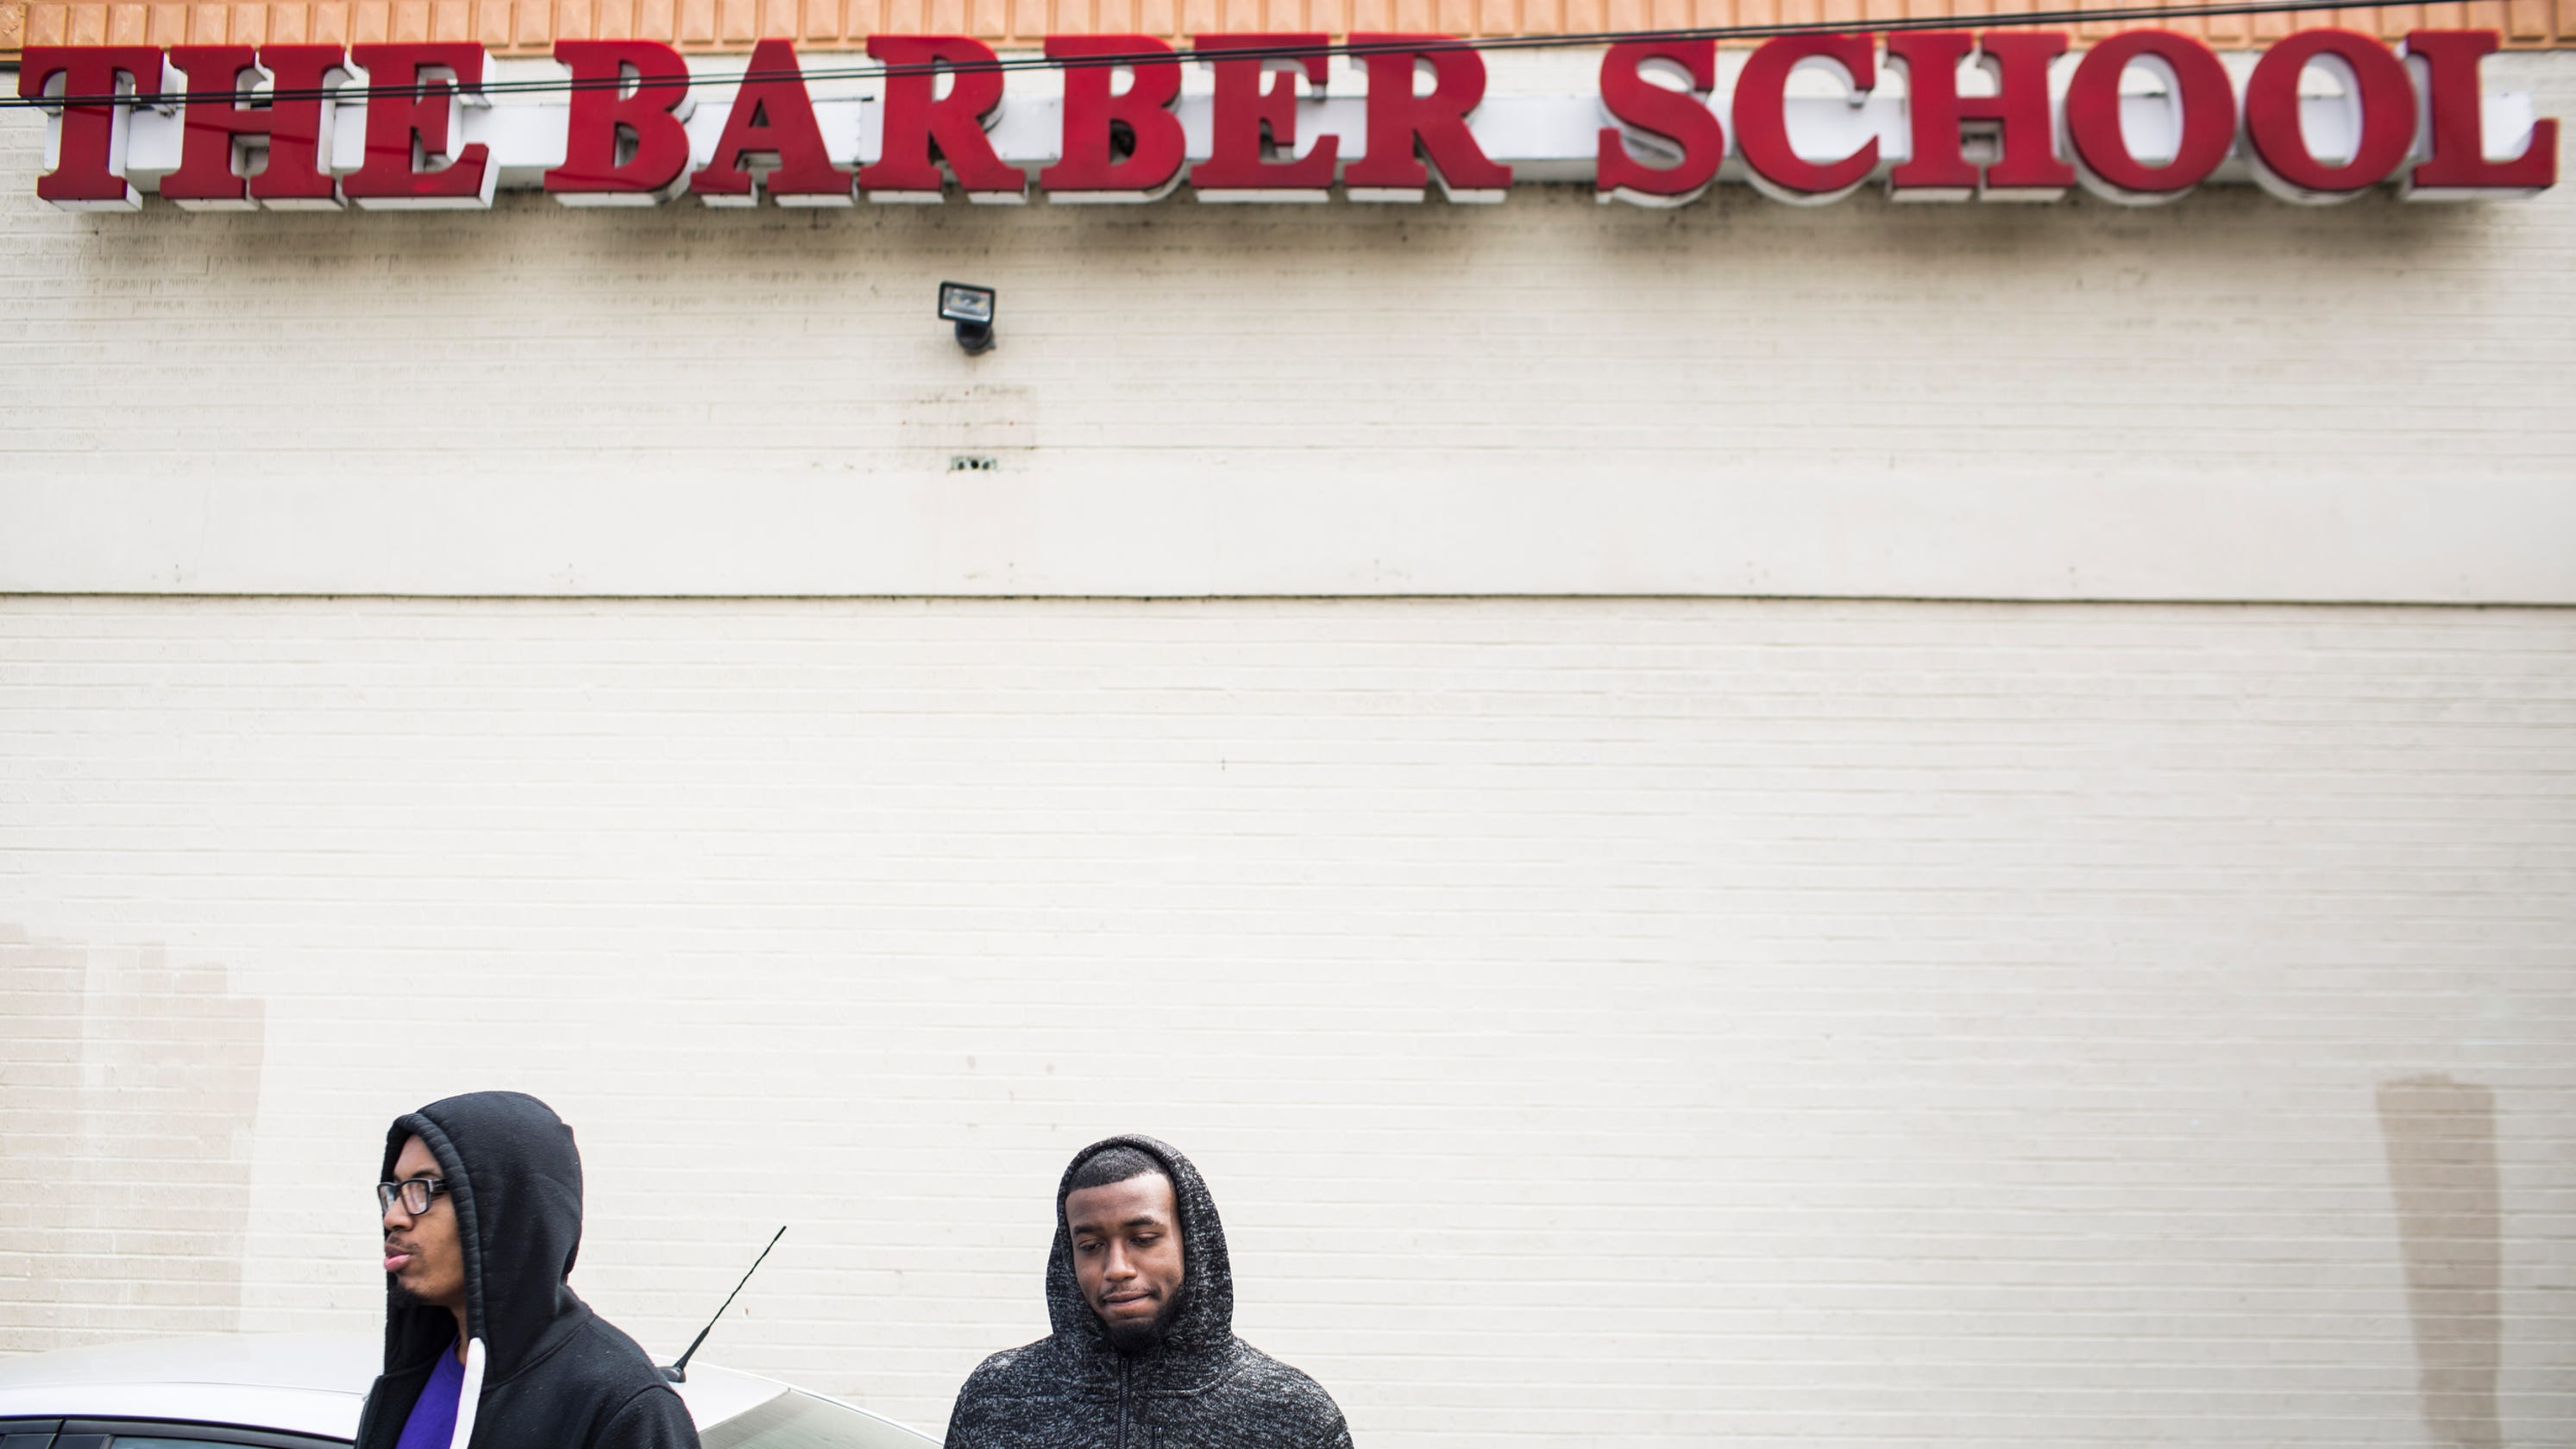 Barber school closes abruptly after losing access to federal